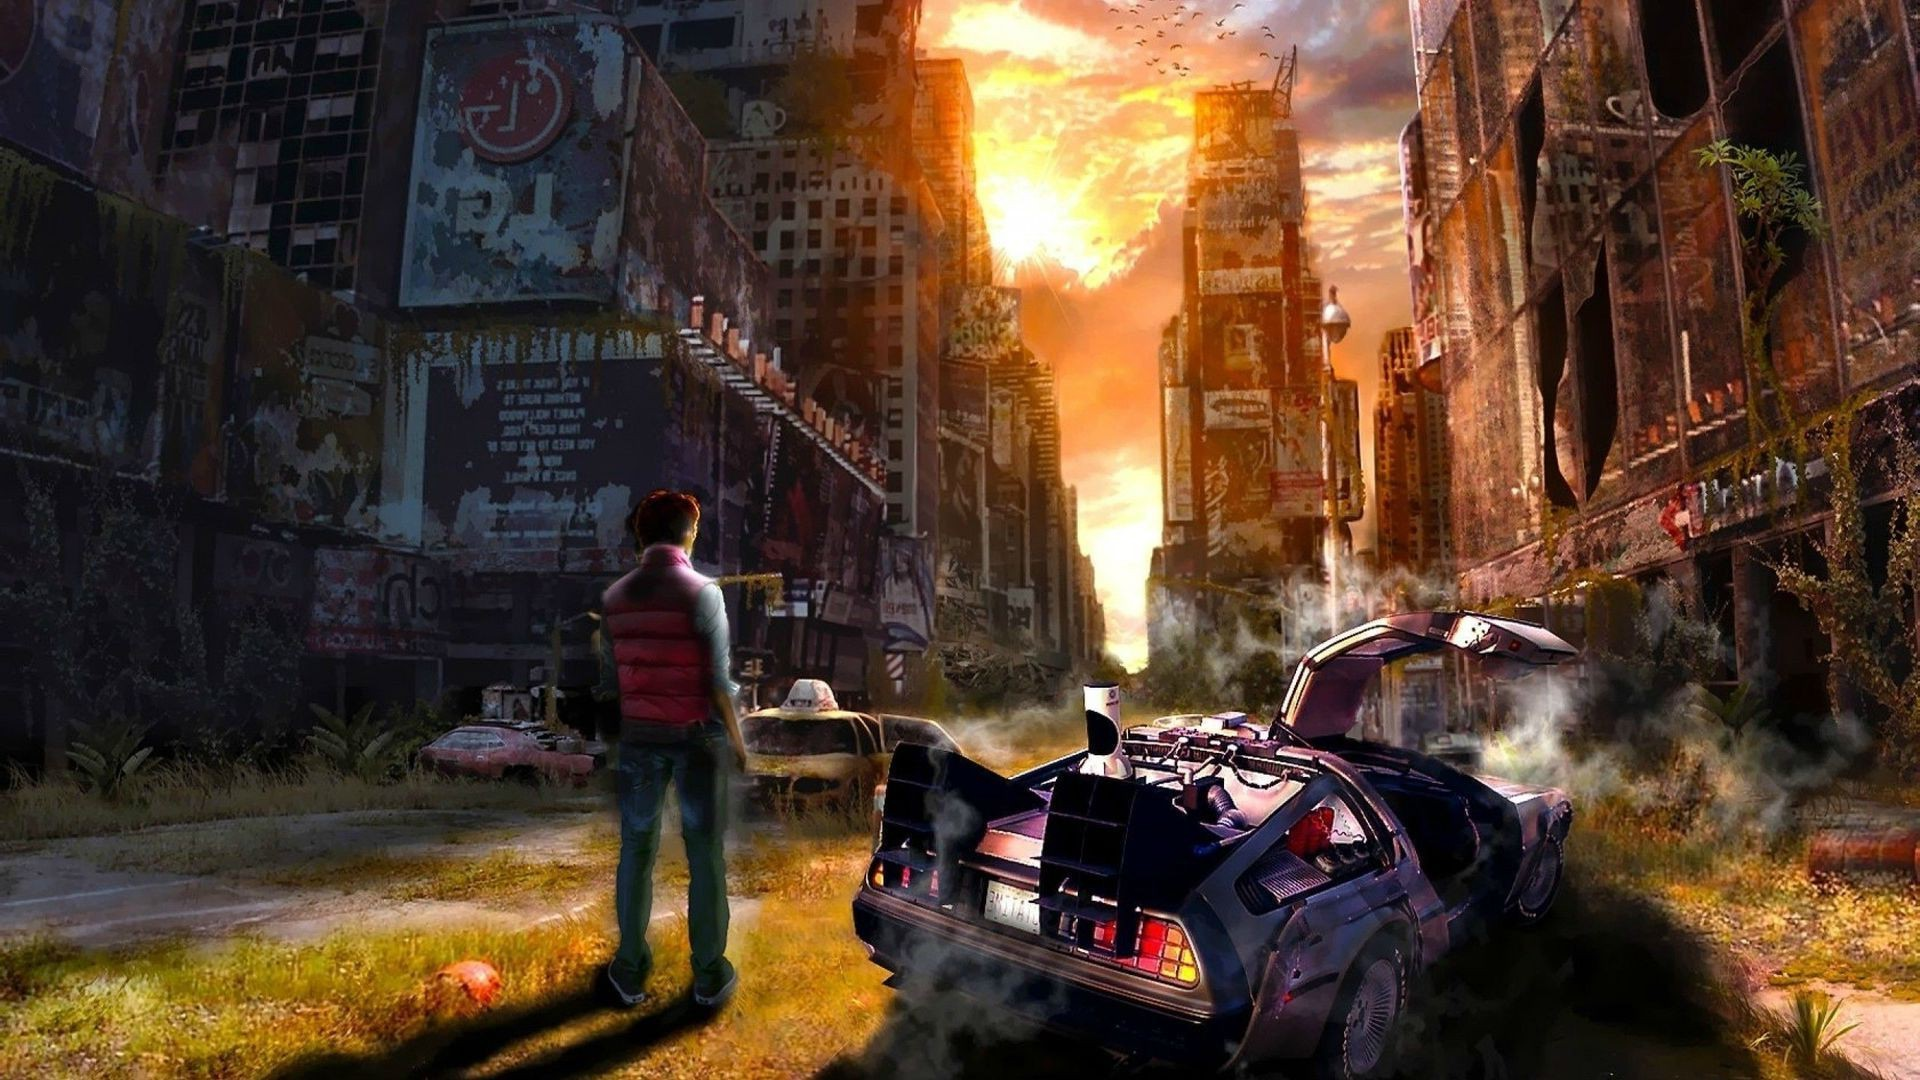 1920x1080 artwork, Back To The Future, Fantasy Art, DeLorean, Digital Art, Concept  Art, Time Wallpapers HD / Desktop and Mobile Backgrounds